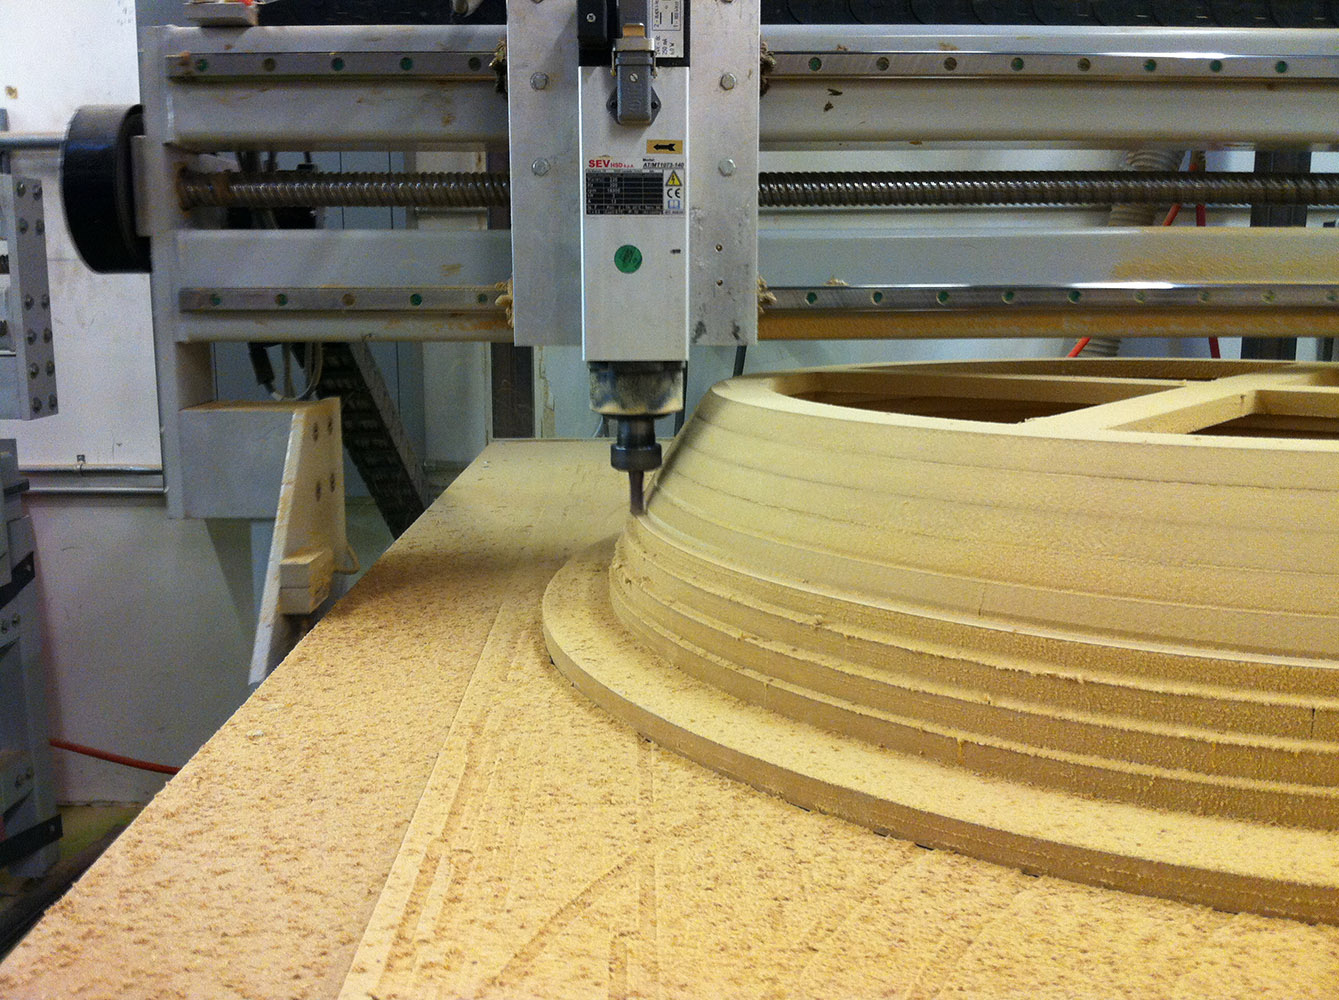 CNC router cutting material